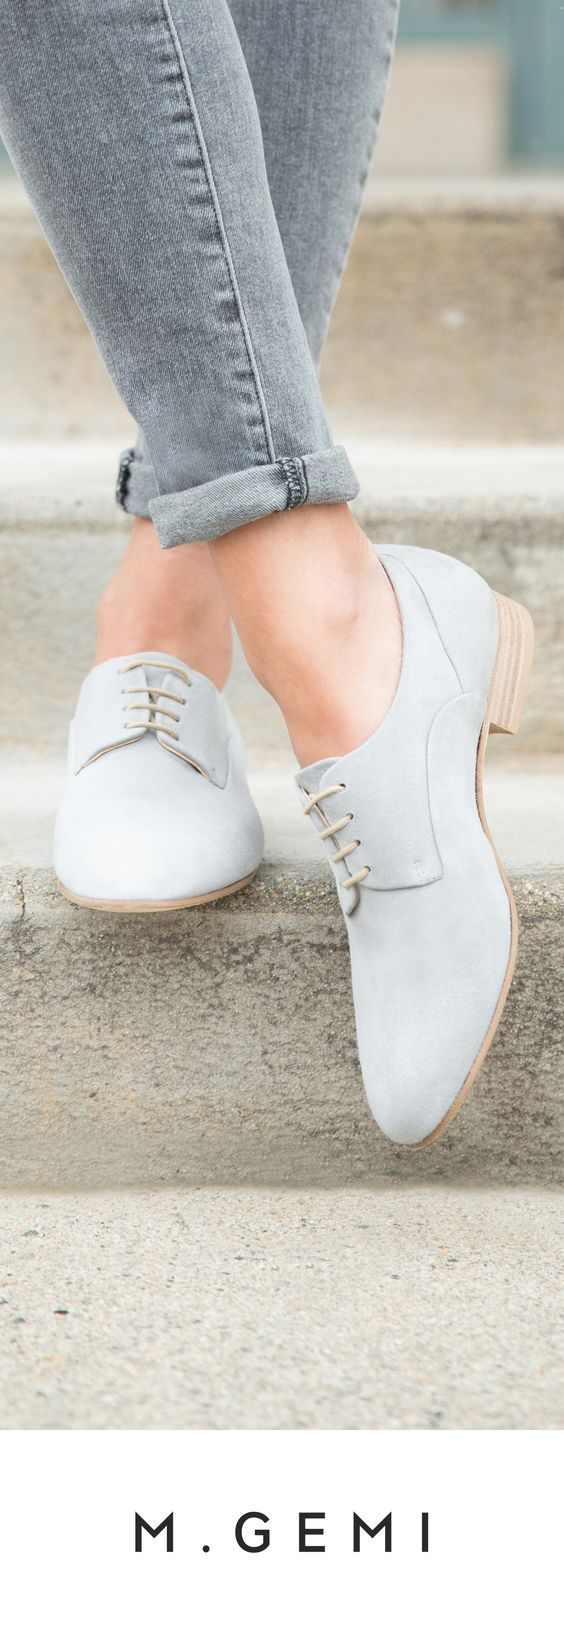 Grey jeans and shoes - LadyStyle